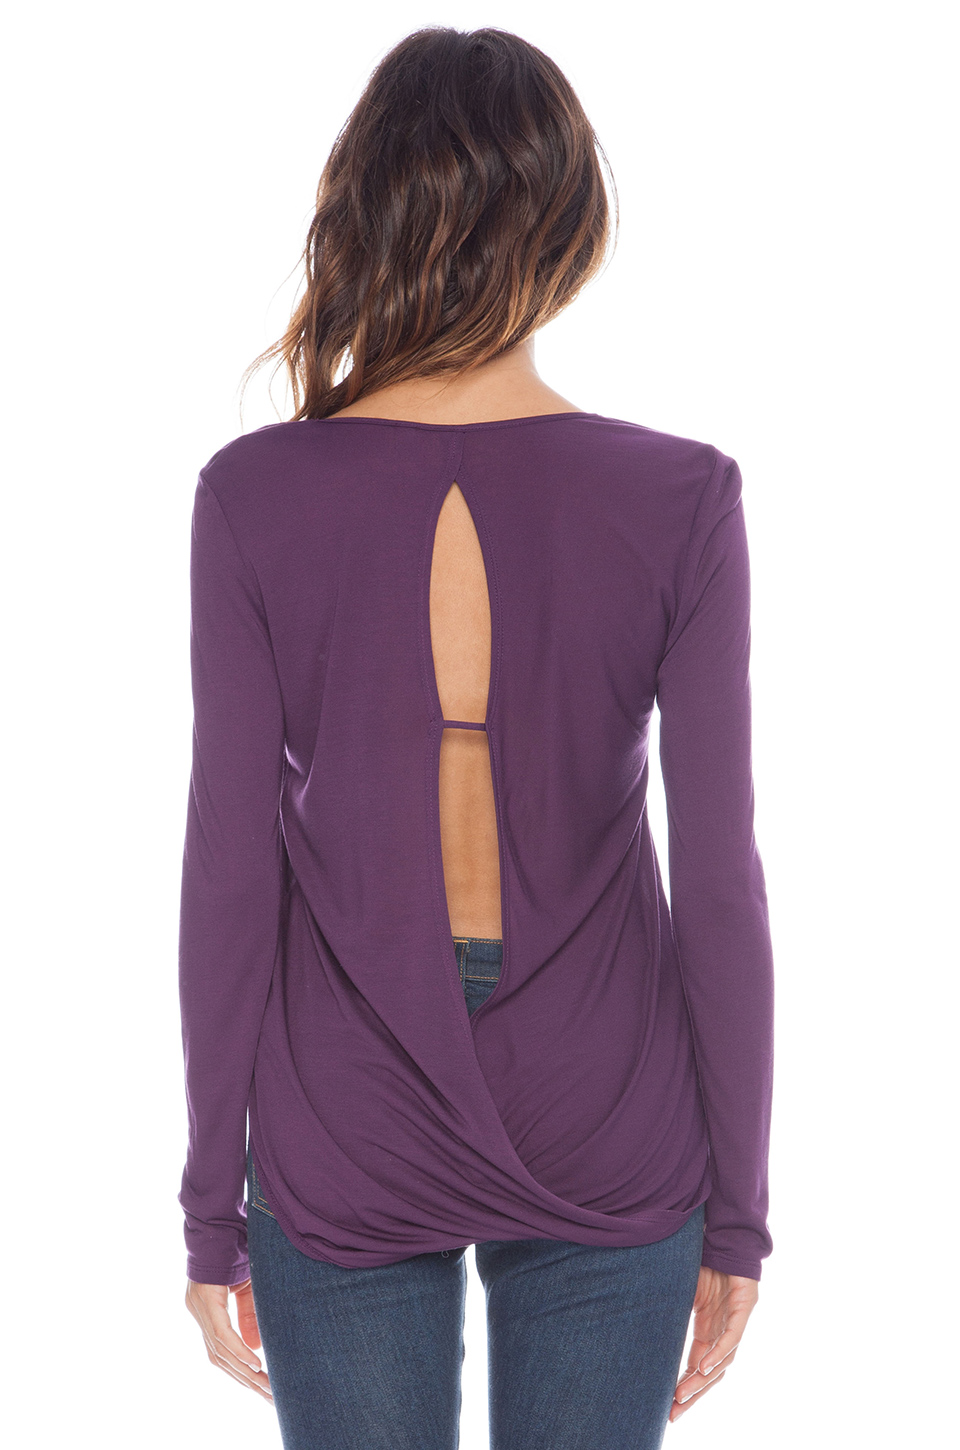 Lanston surplice back top in plum from revolveclothing.com